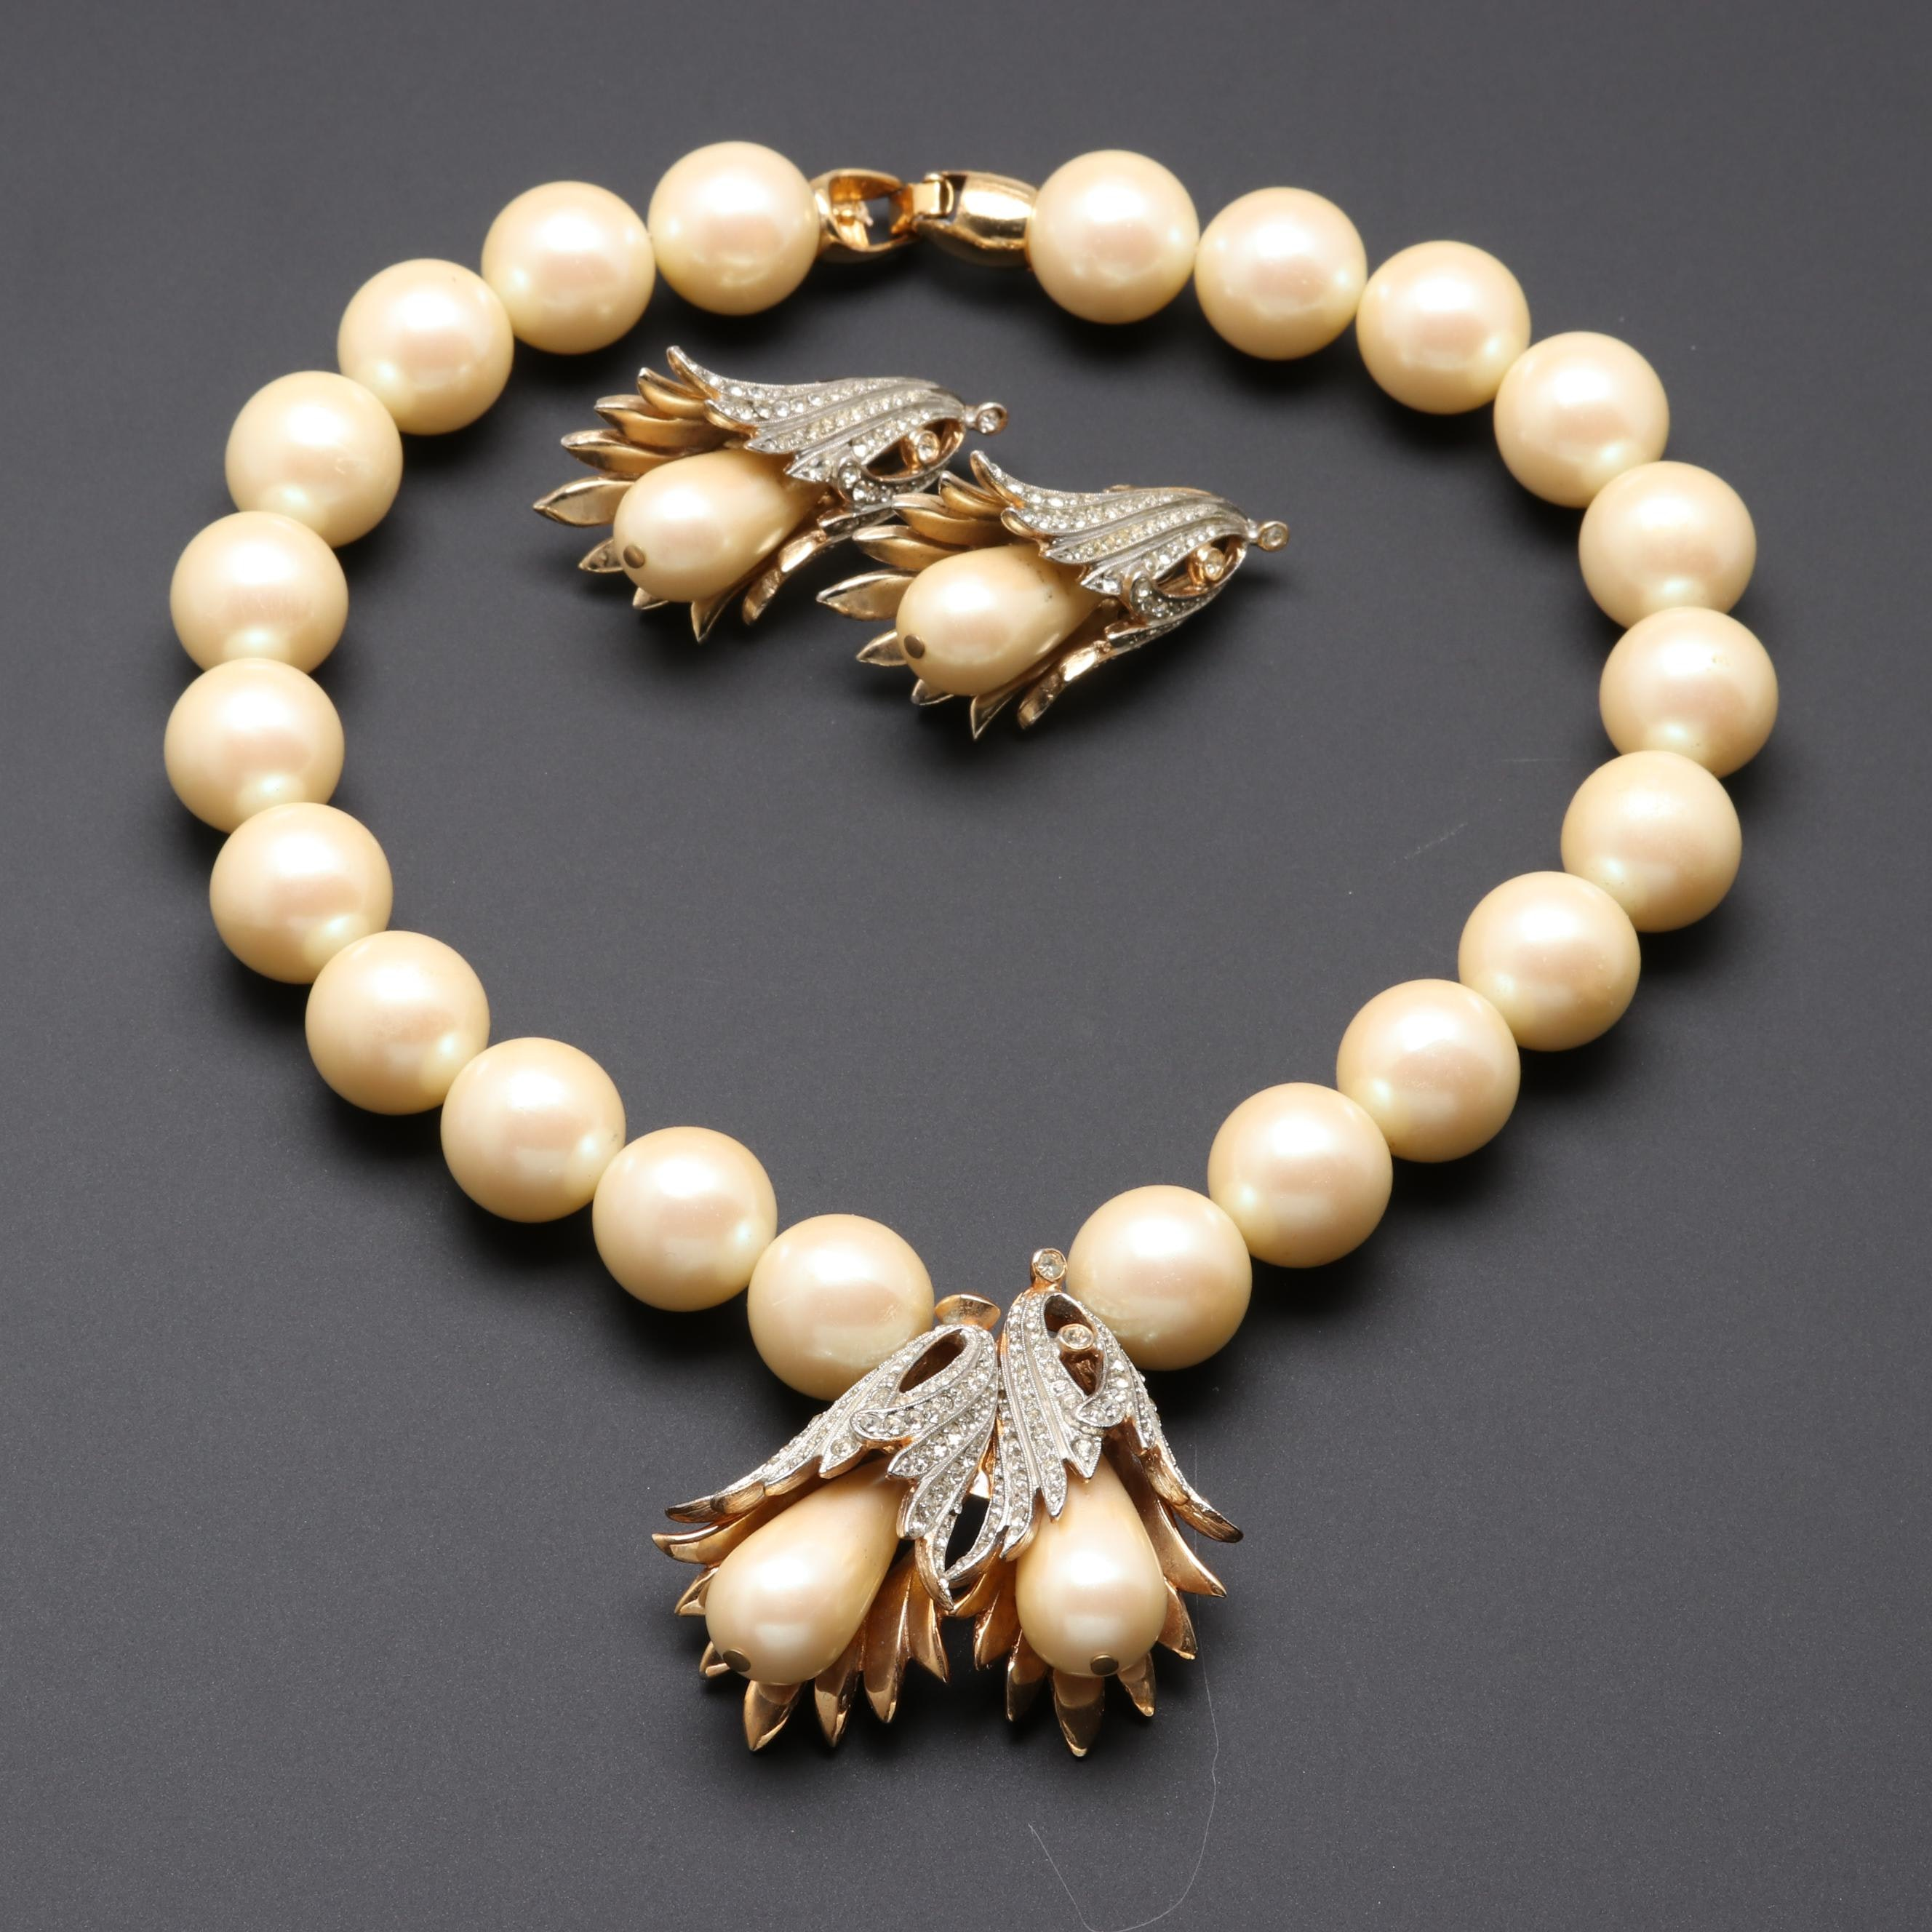 Gold Tone Glass Crystal and Imitation Pearl Necklace and Earring Set